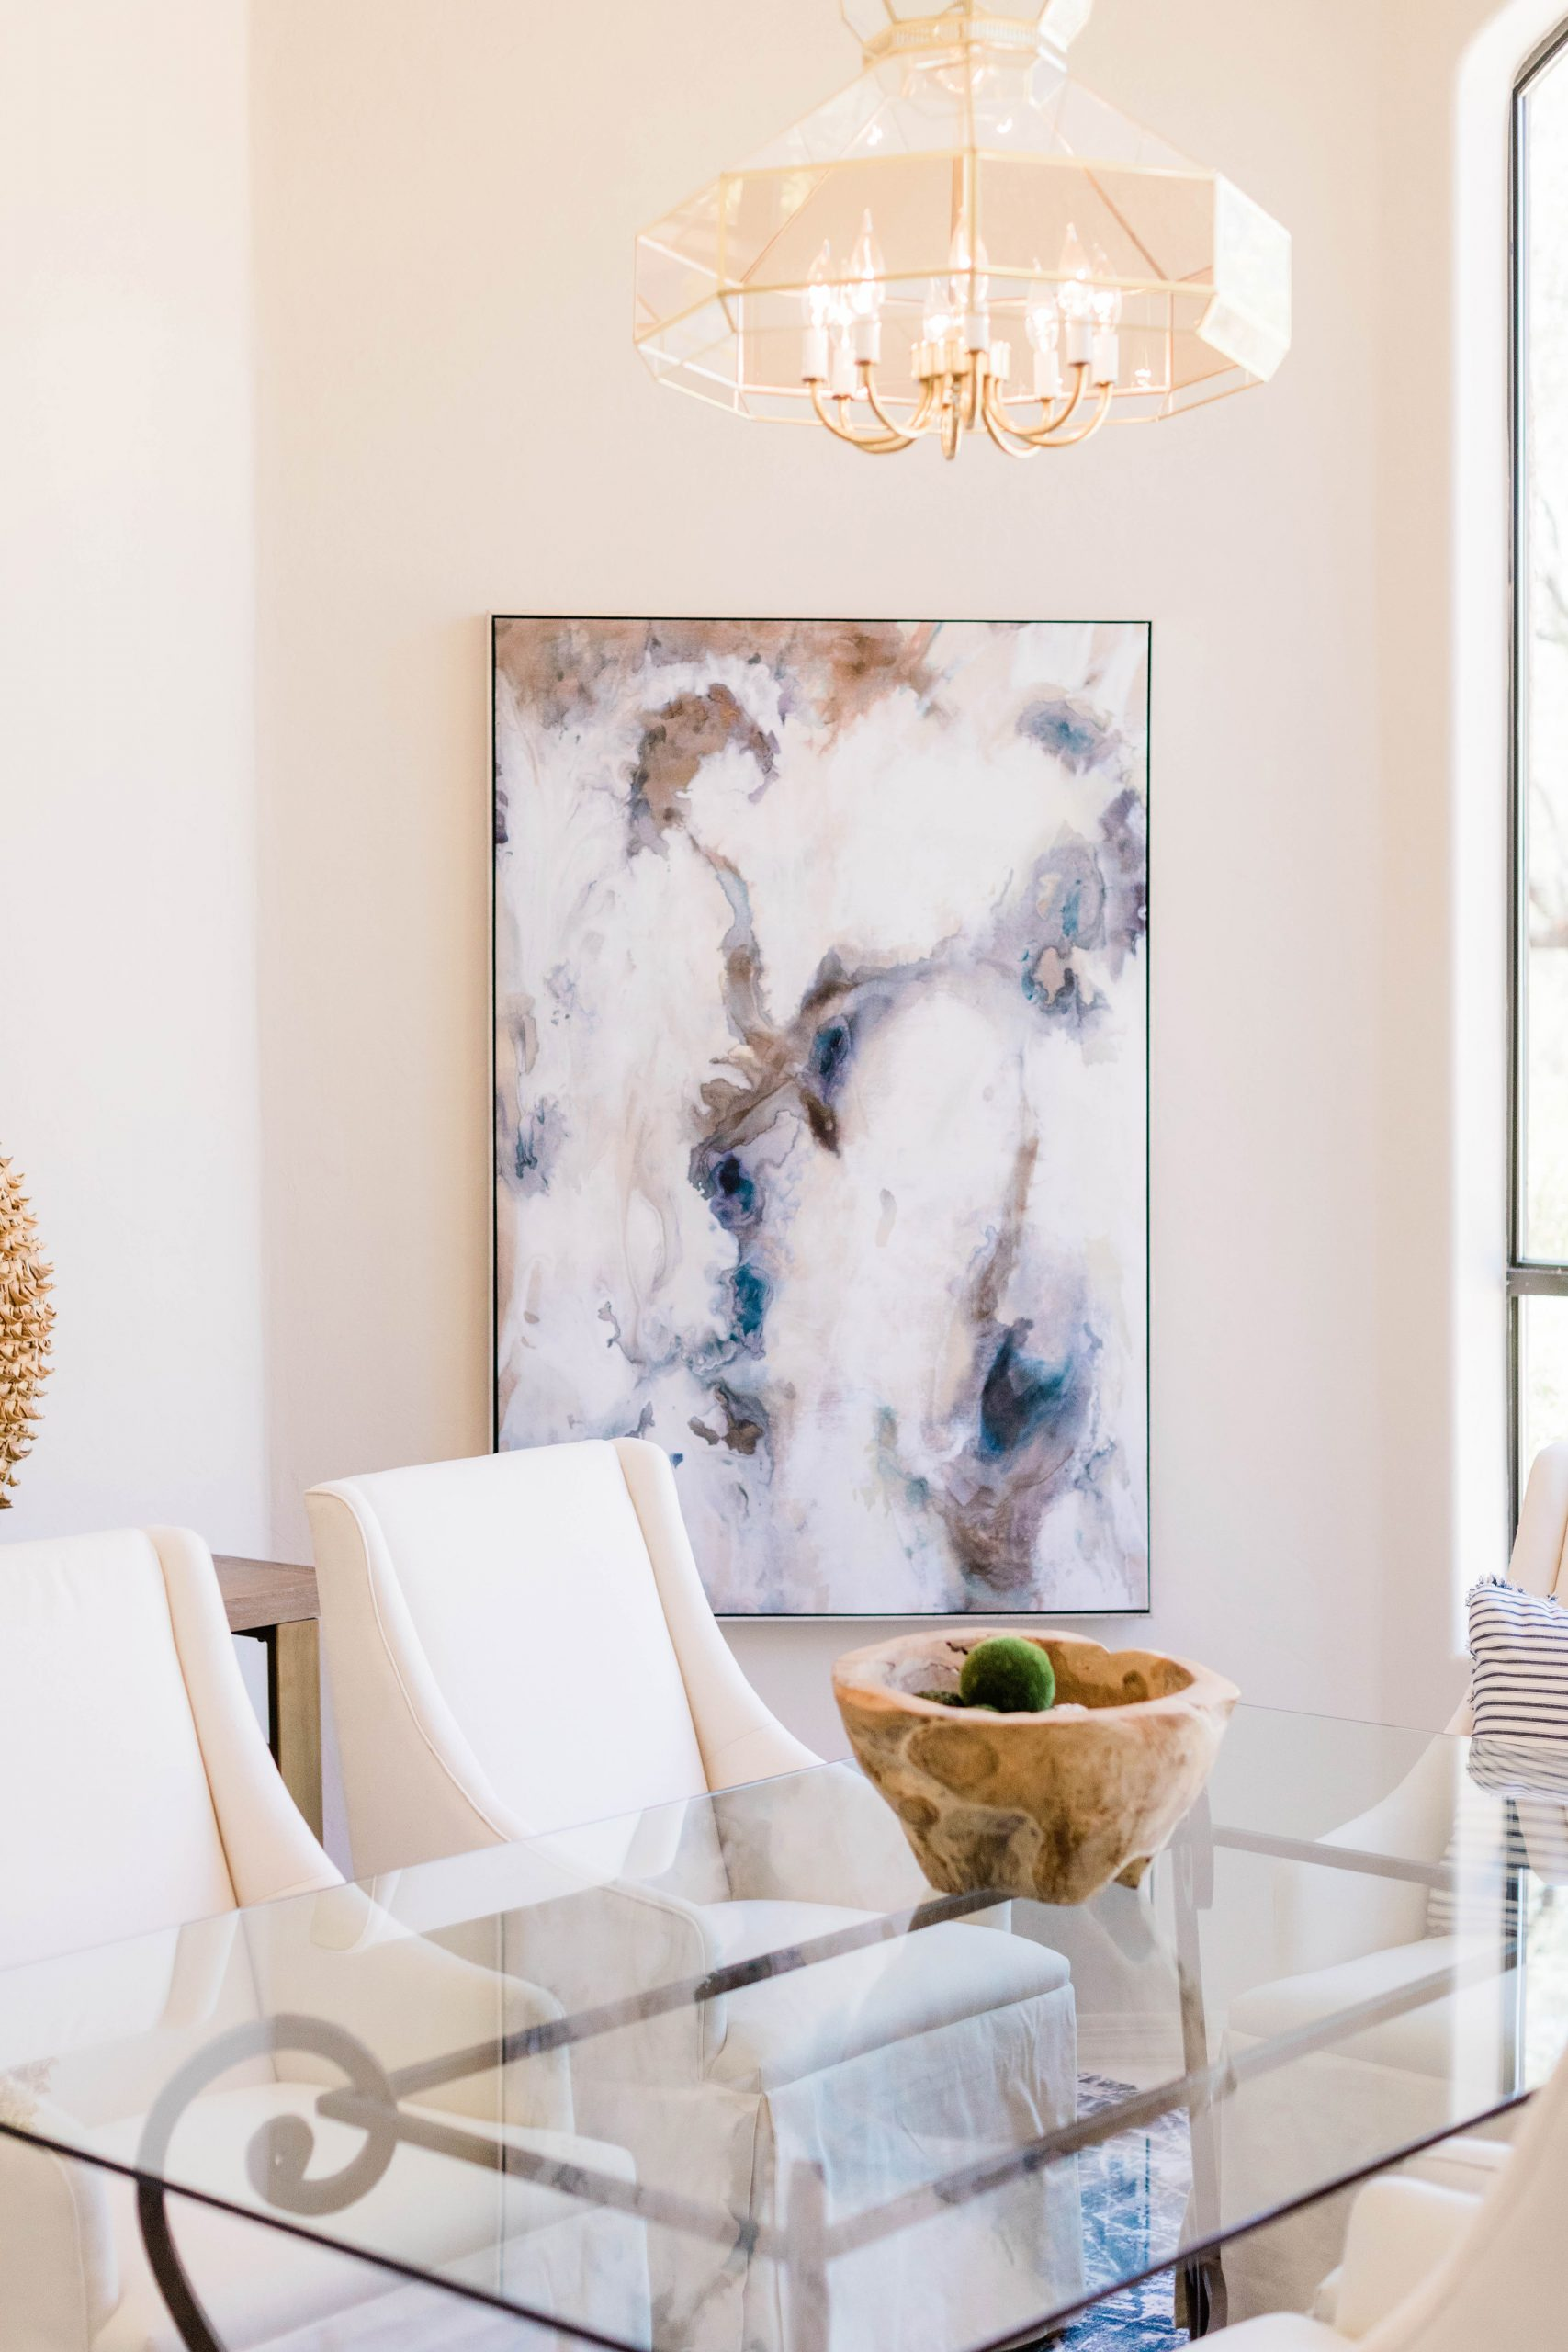 5 Easy Ways To Refresh Your Home Interior